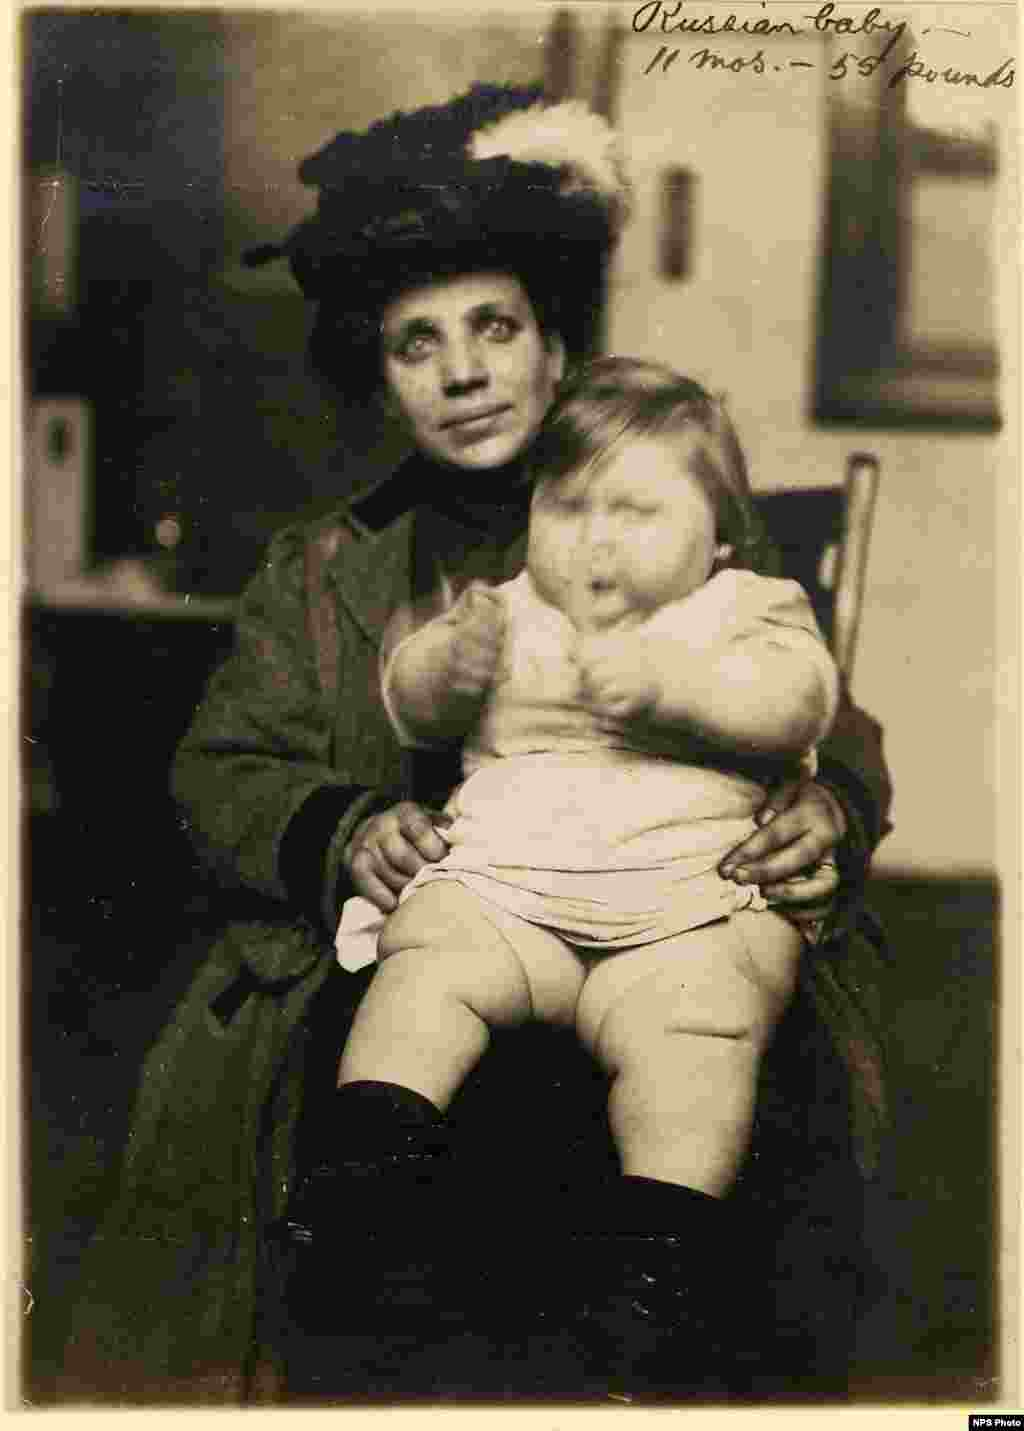 A Russian mother with her baby. At the time of the photo, the child was 11 months old and weighed 55 pounds (25 kilograms).